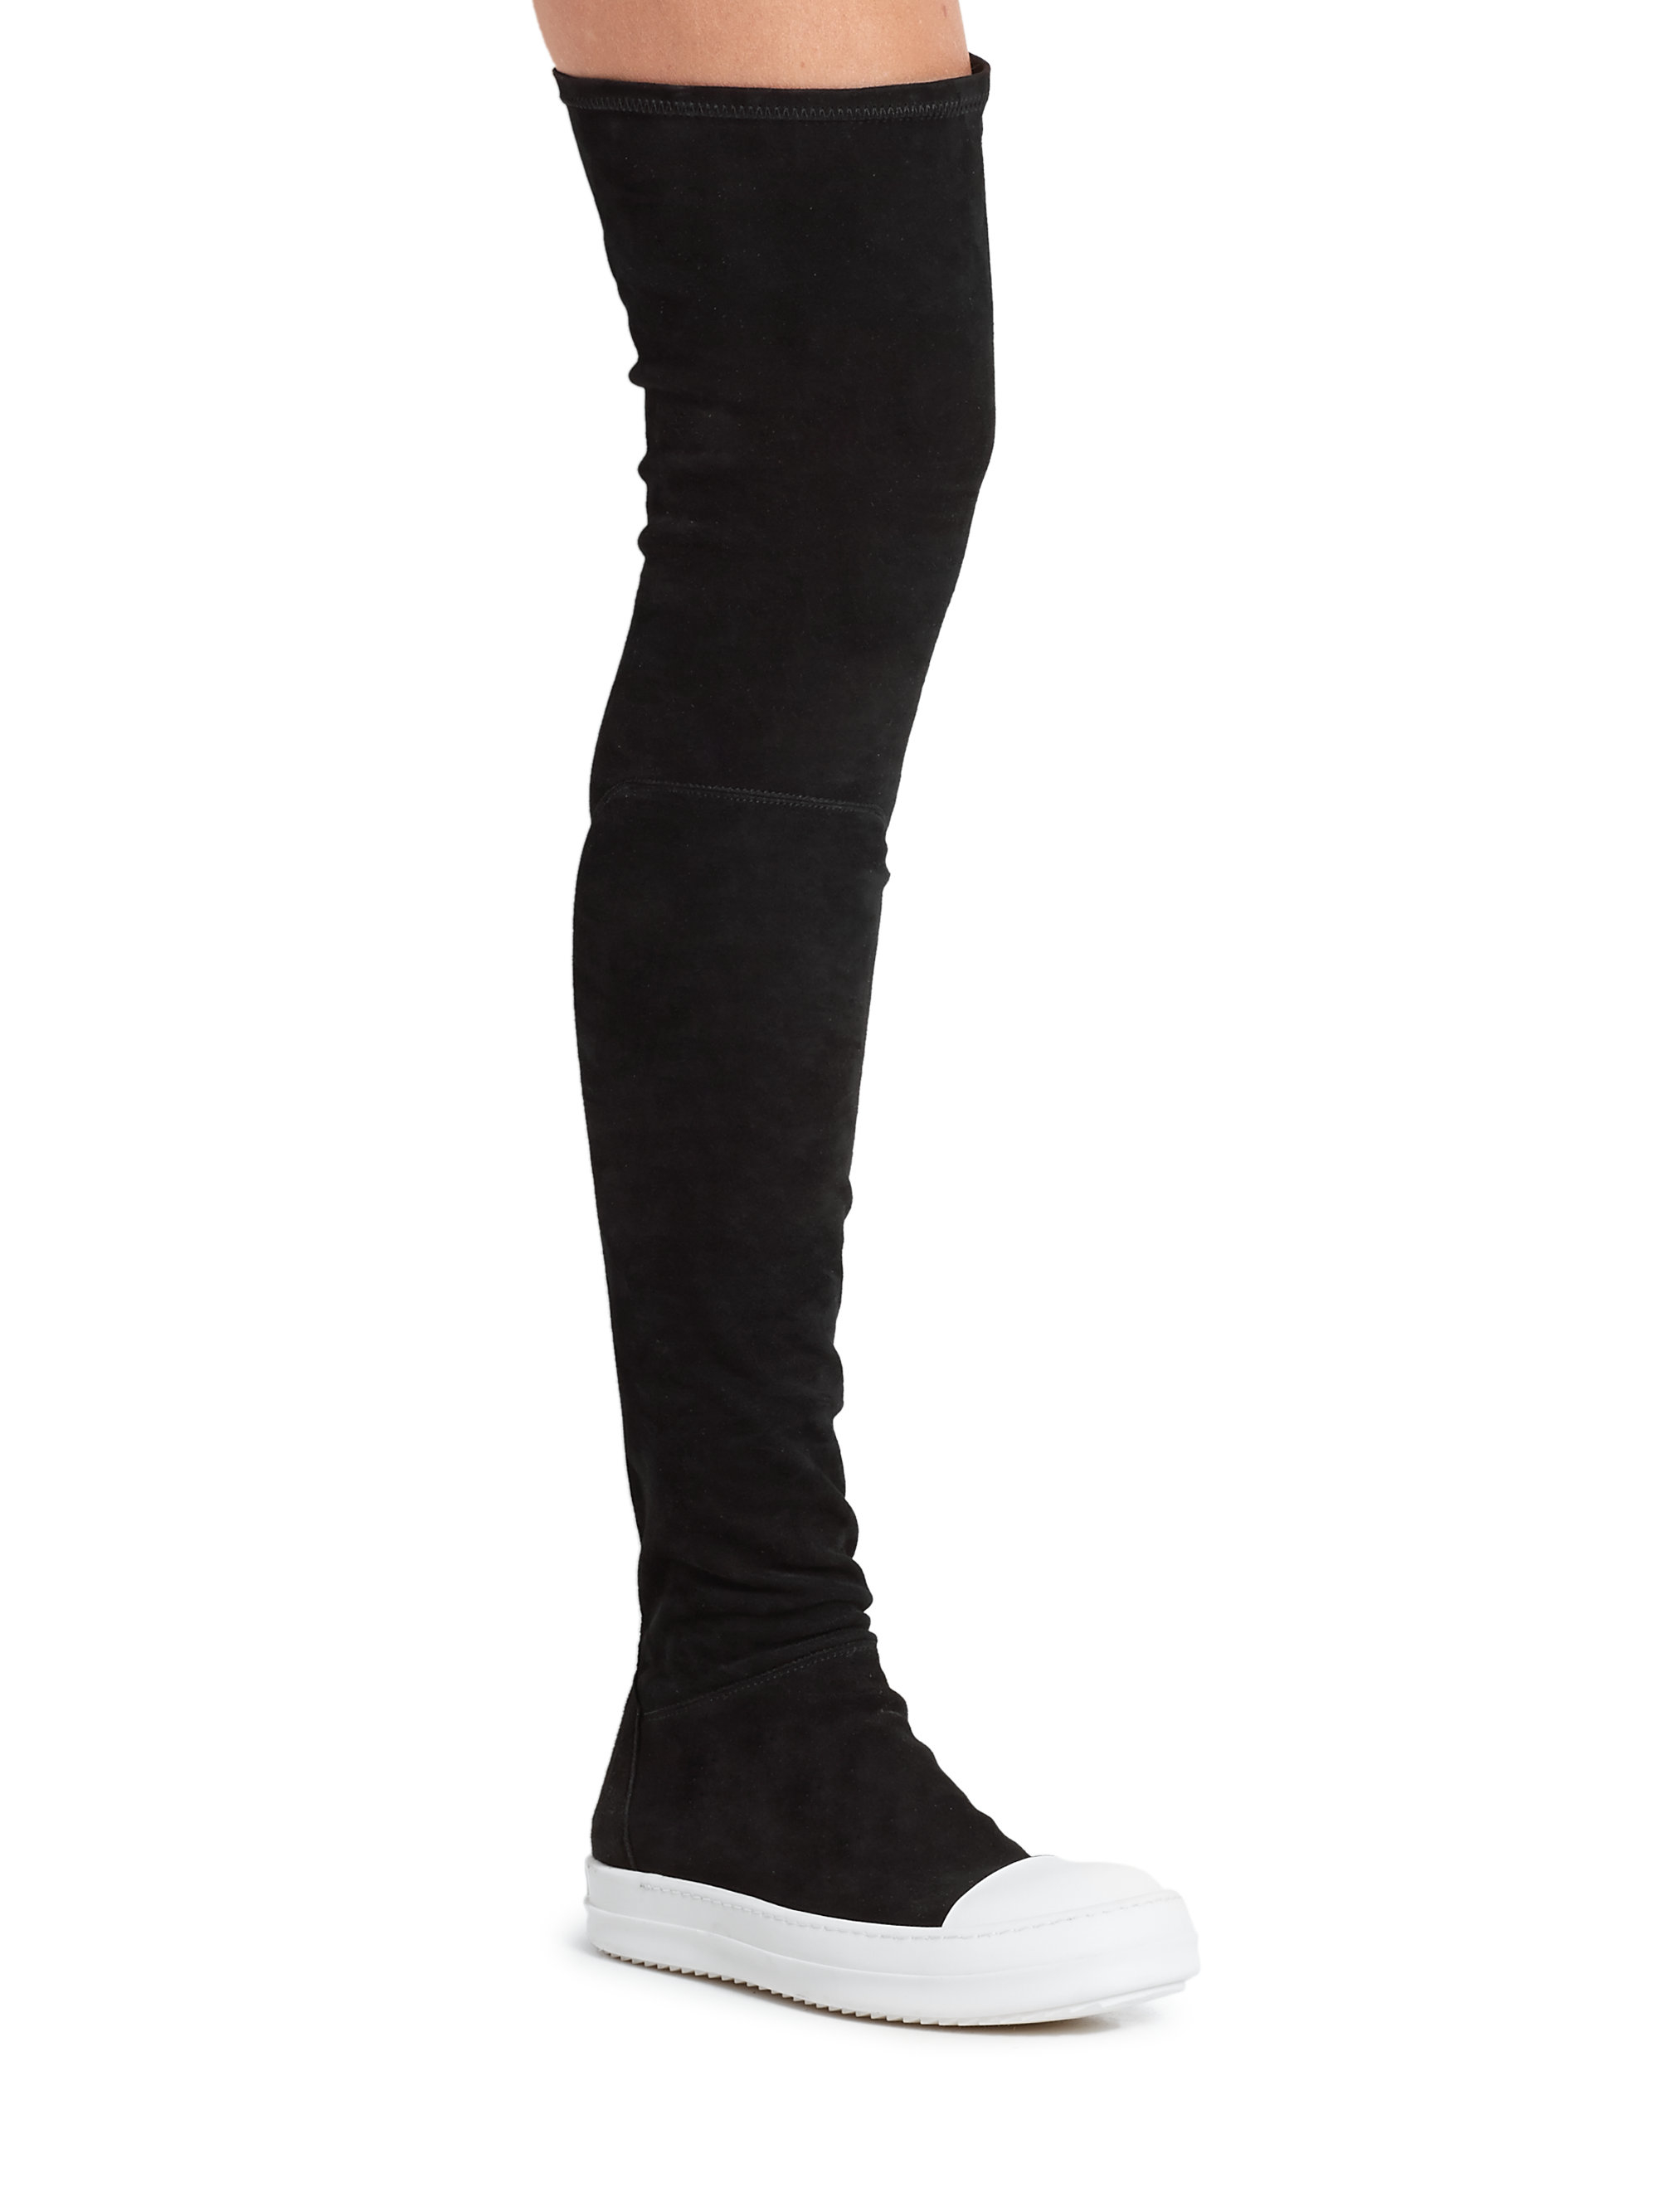 Sale Cheap Online Official Site Cheap Price Sock boots - Black Rick Owens With Paypal Cheap Online Buy Cheap Manchester Discount Cheapest NLqIXvIHK